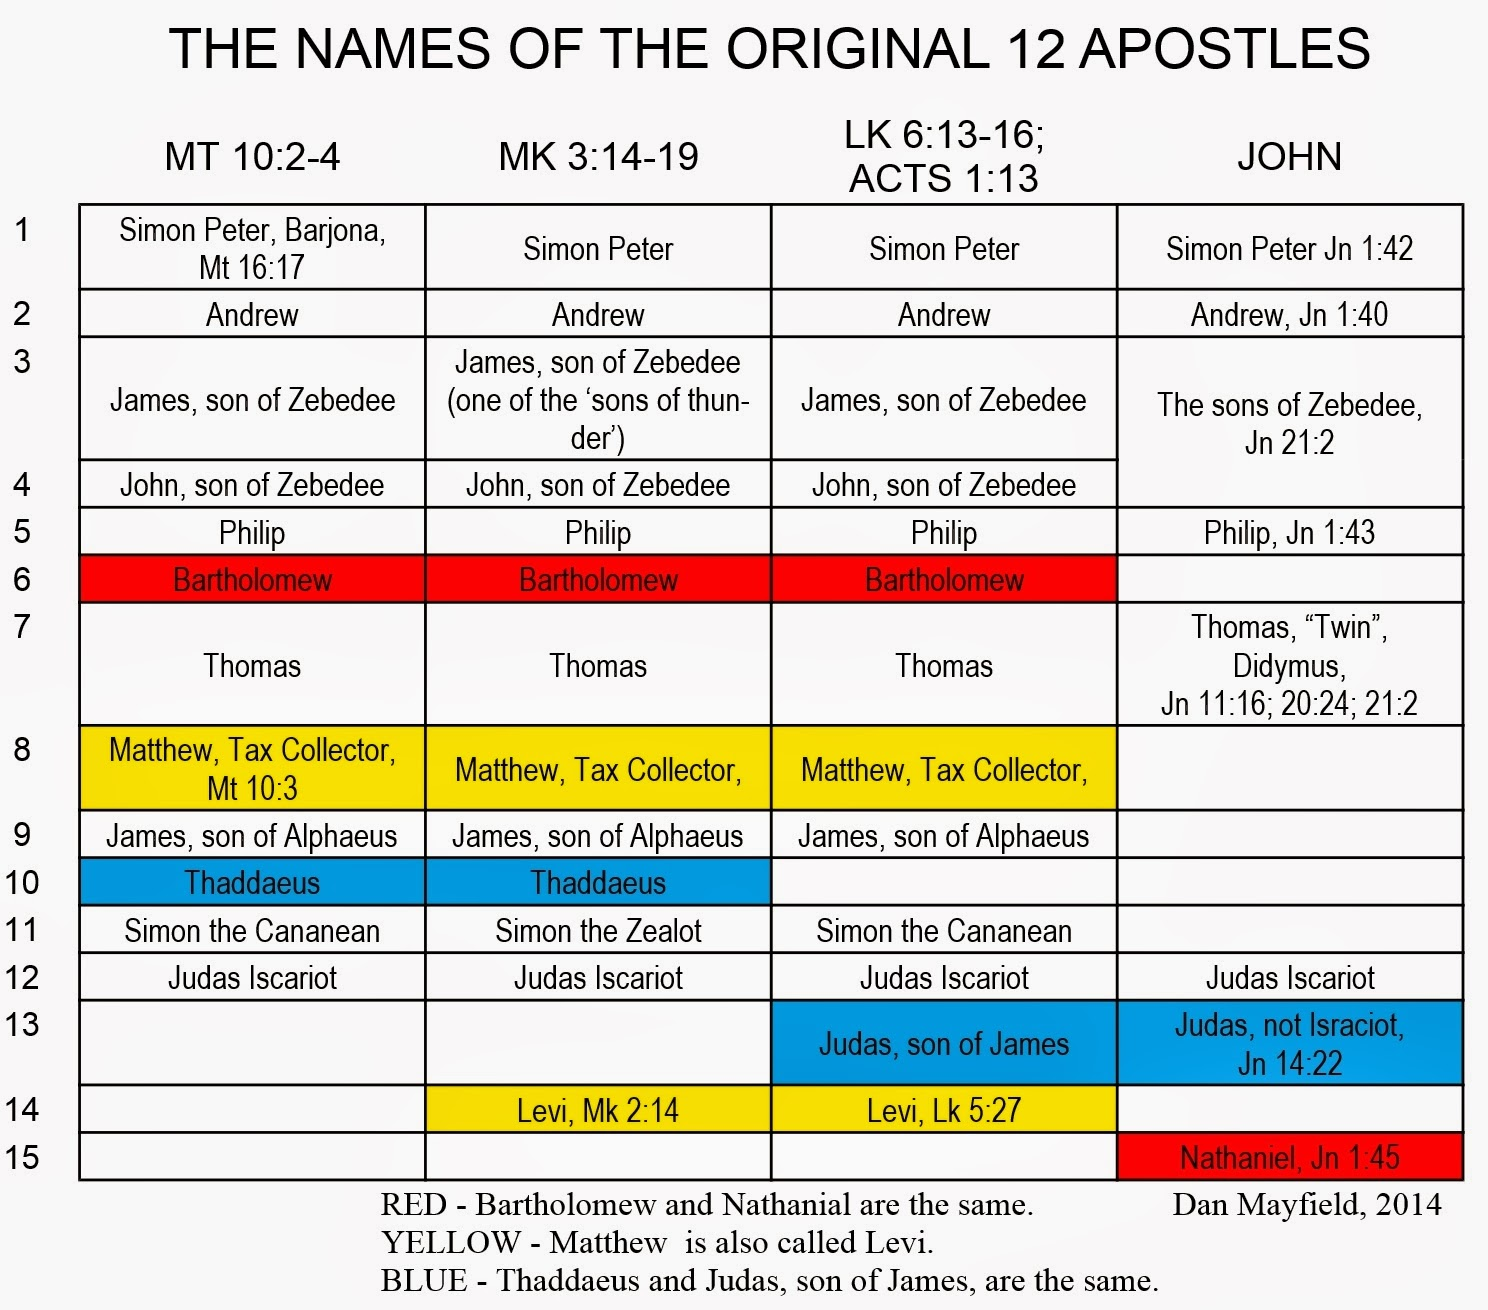 how many apostles did jesus choose 12 or more updated